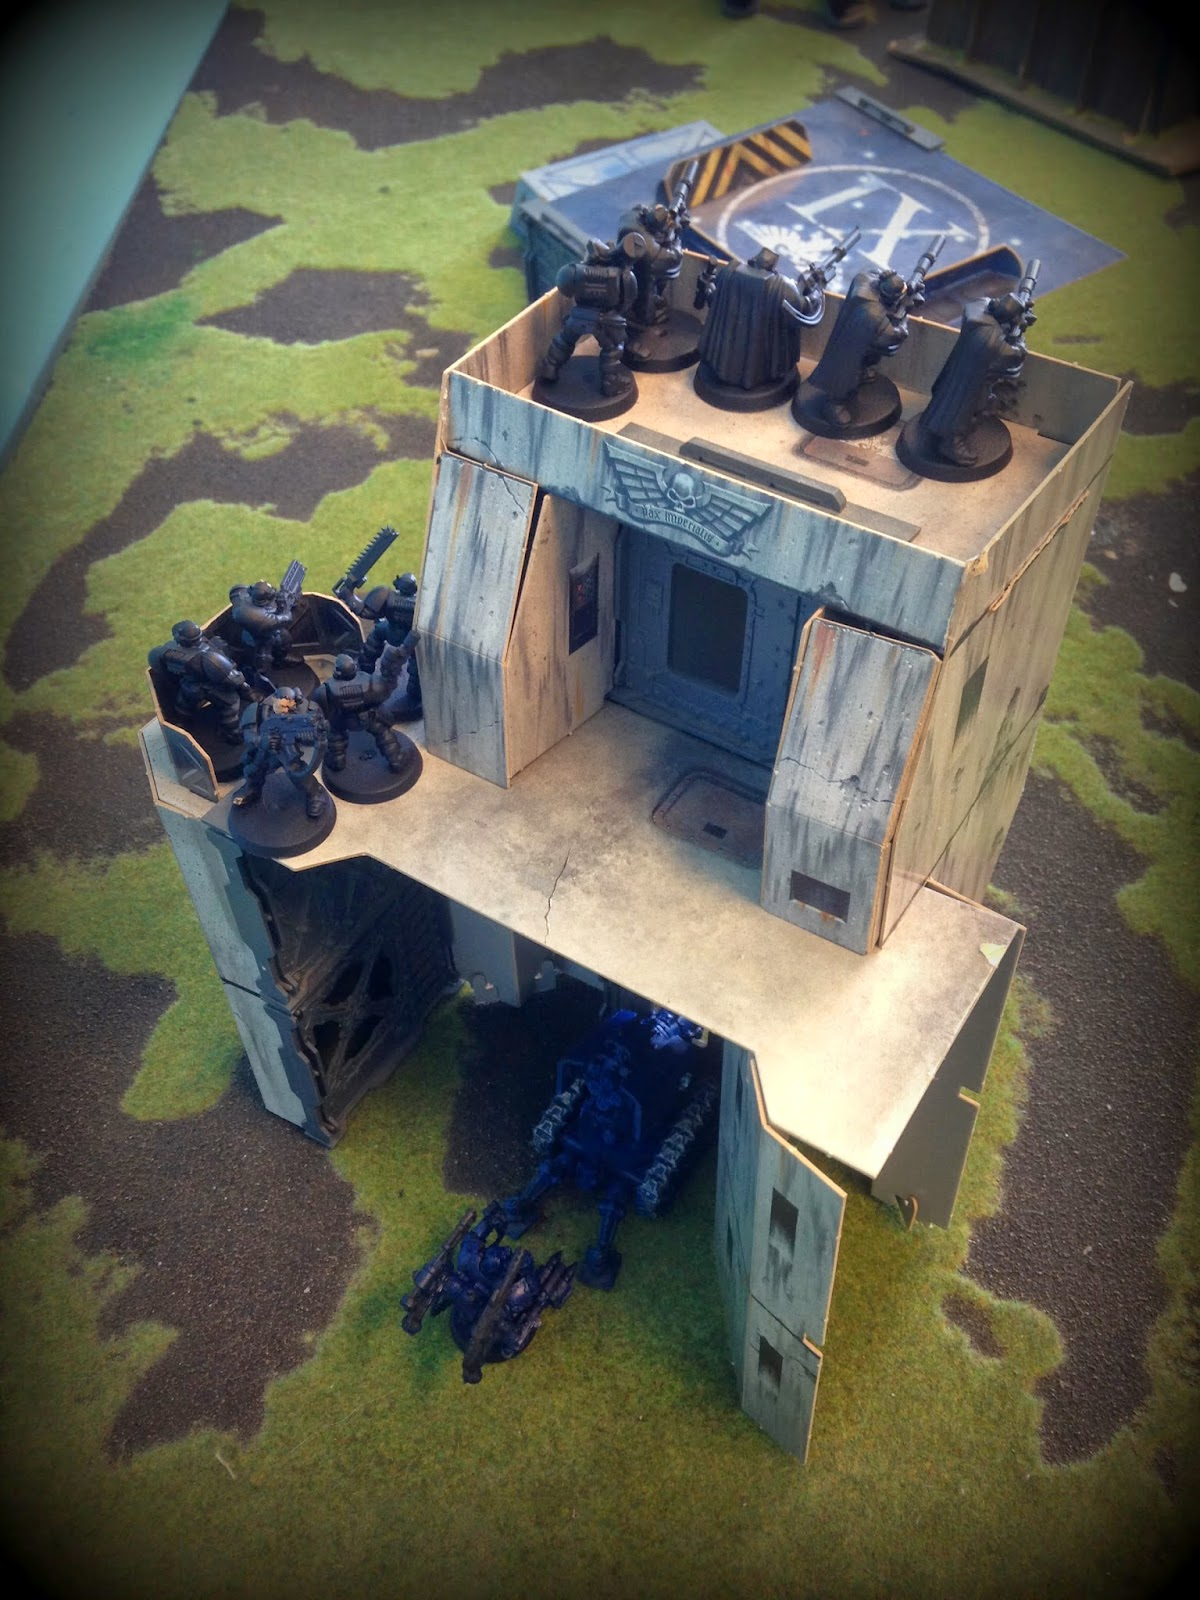 Thunderfire Cannon, Warhammer 40K, Space Marine Snipers, Battle Gaming One